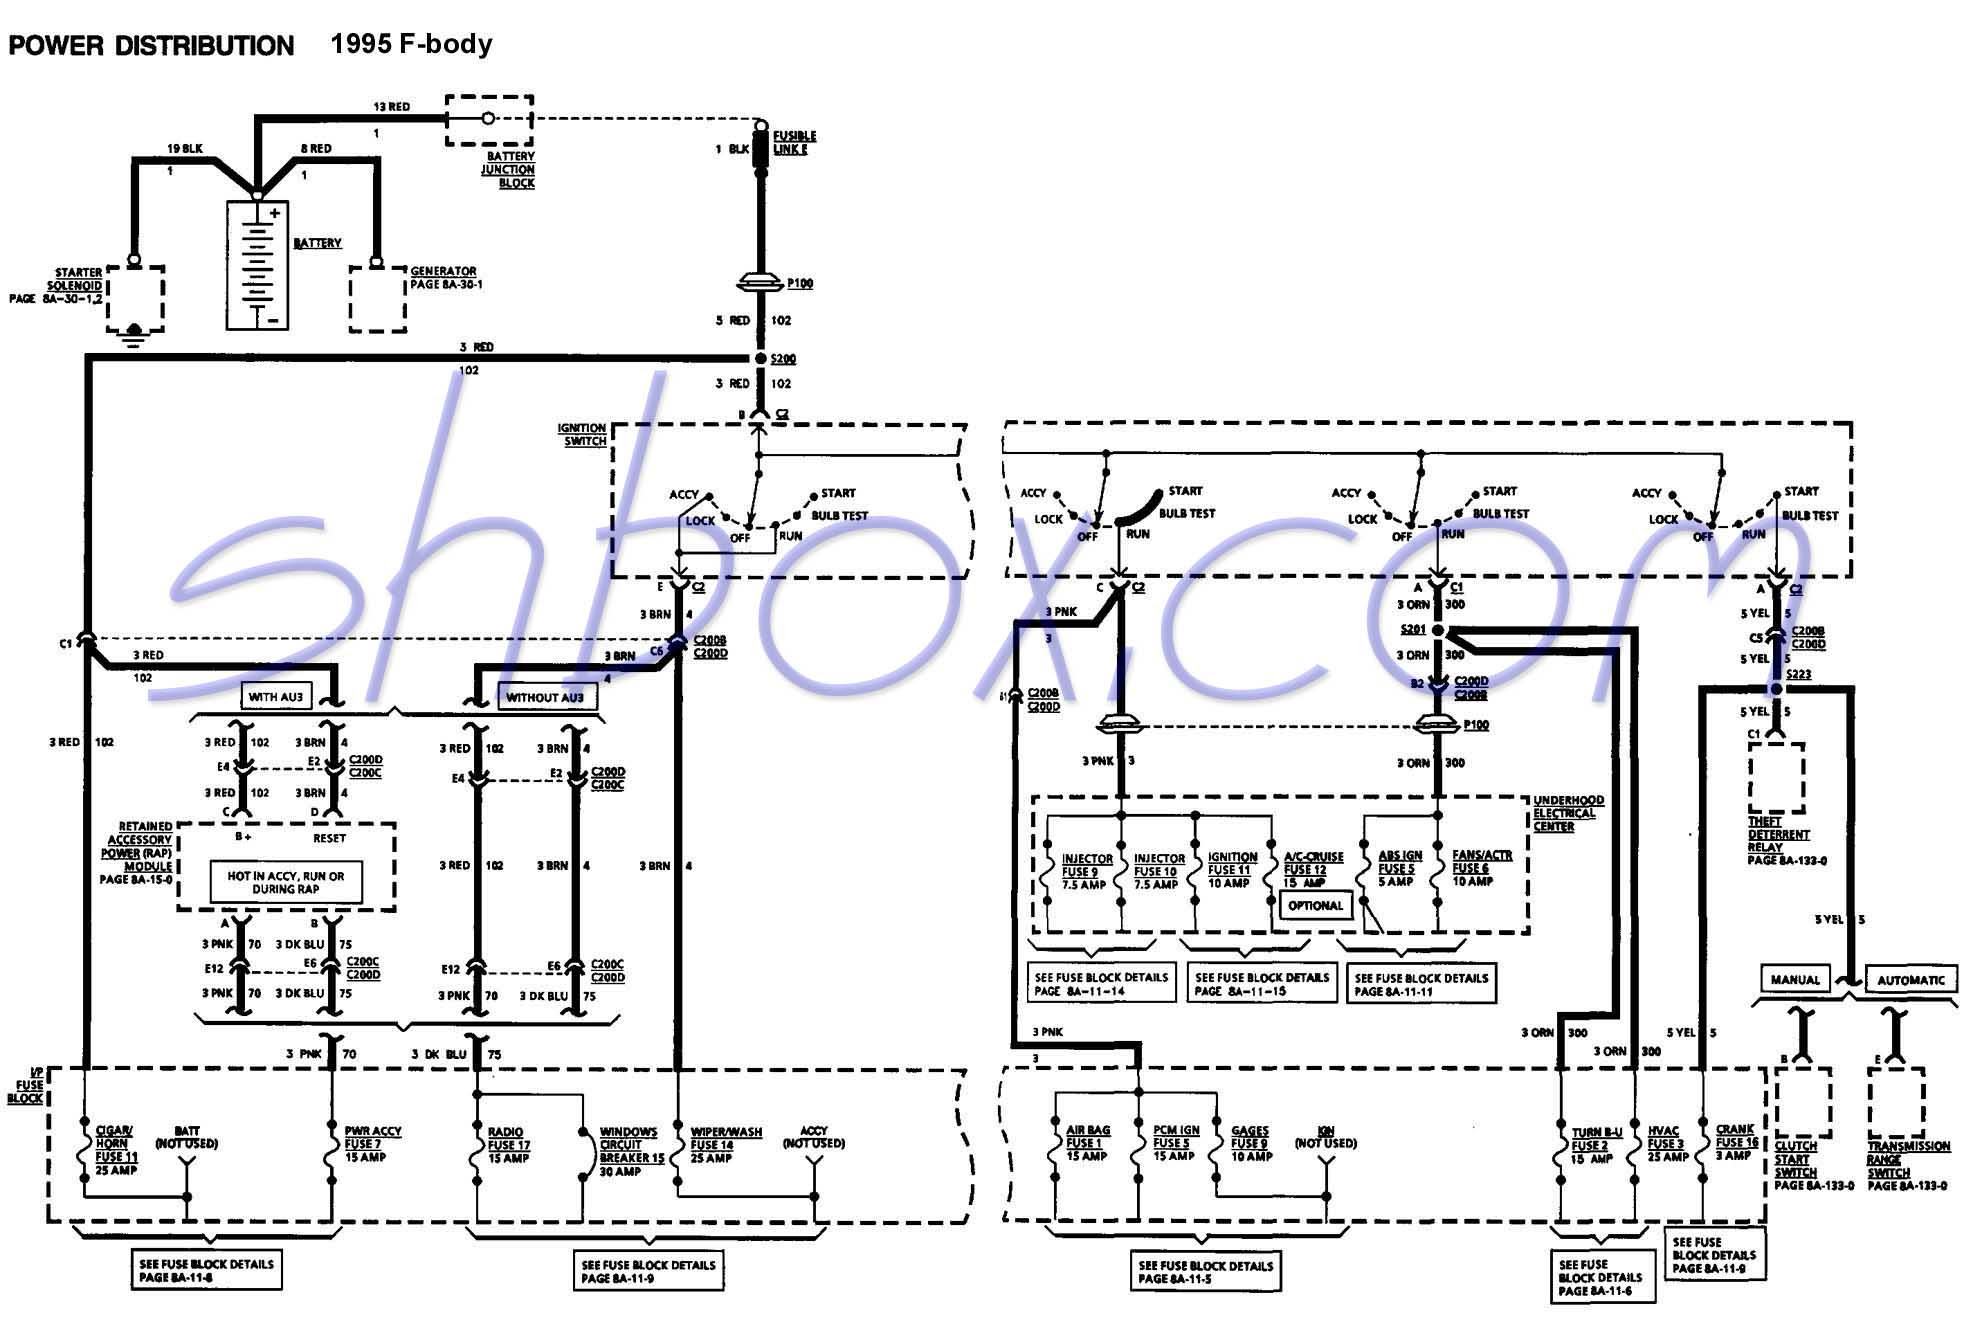 Wiring Diagram 2000 Chevy Camaro Ss Wiring Diagram Bland Cable C Bland Cable C Piuconzero It